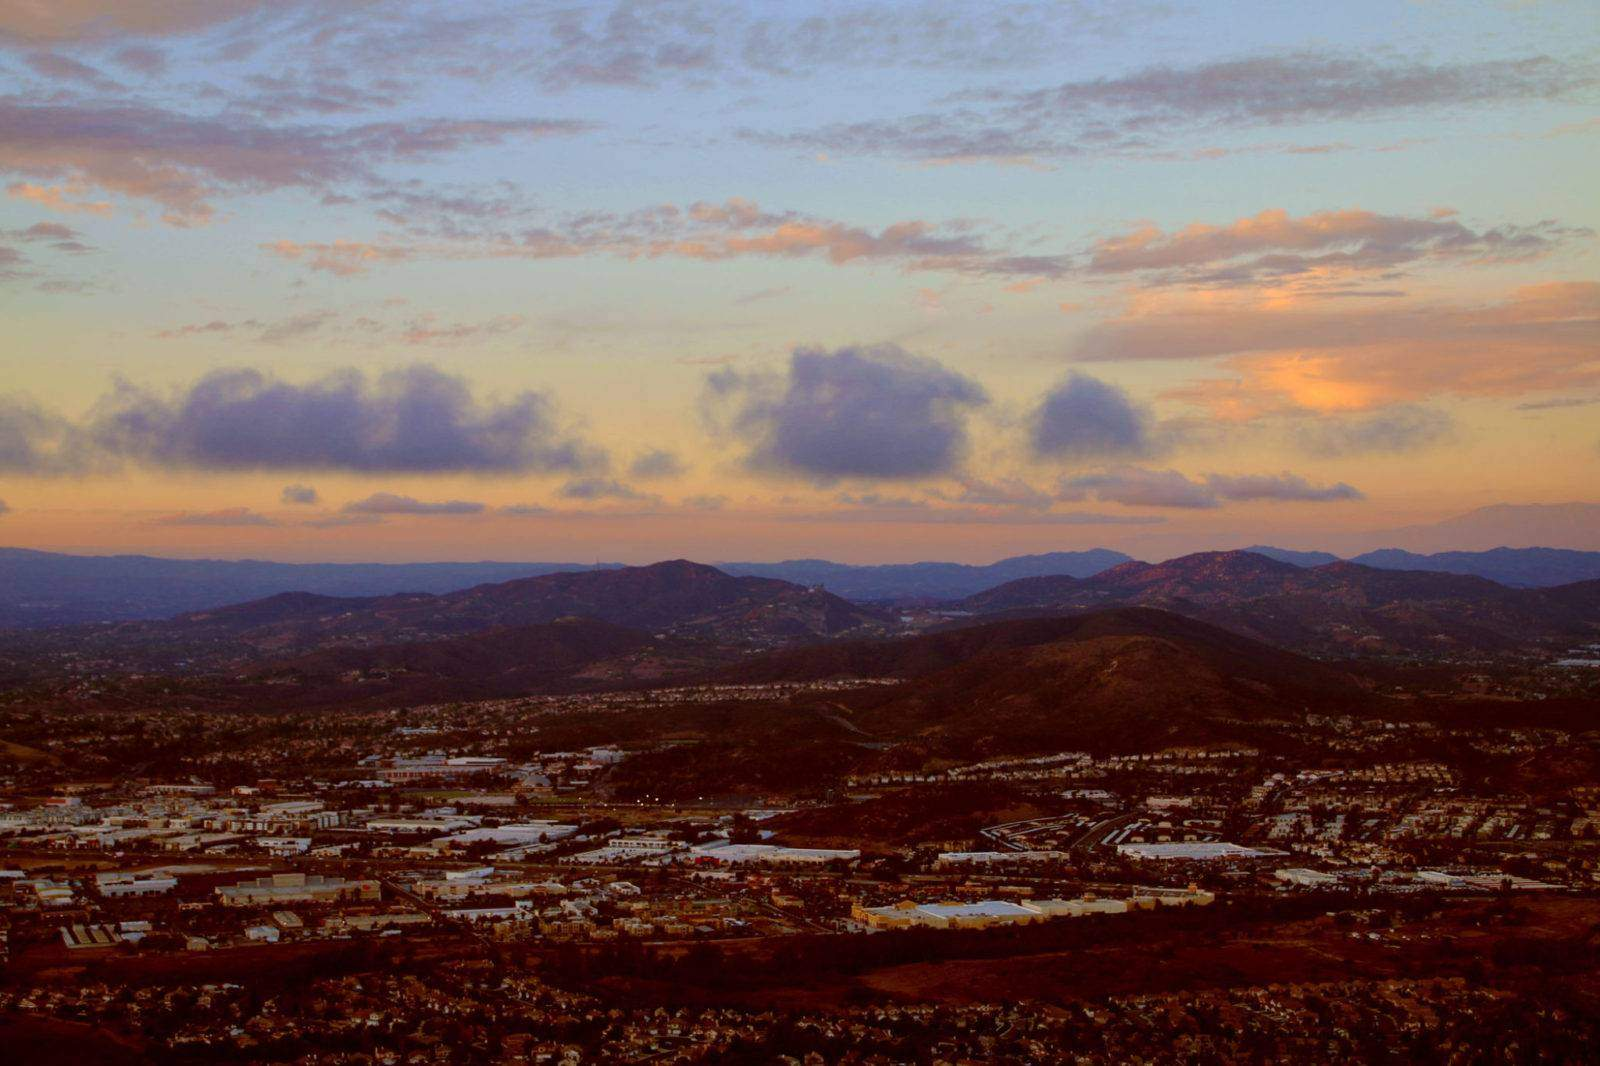 Check out one of San Diego's best panoramic views located in San Marcos, Double Peak Park!